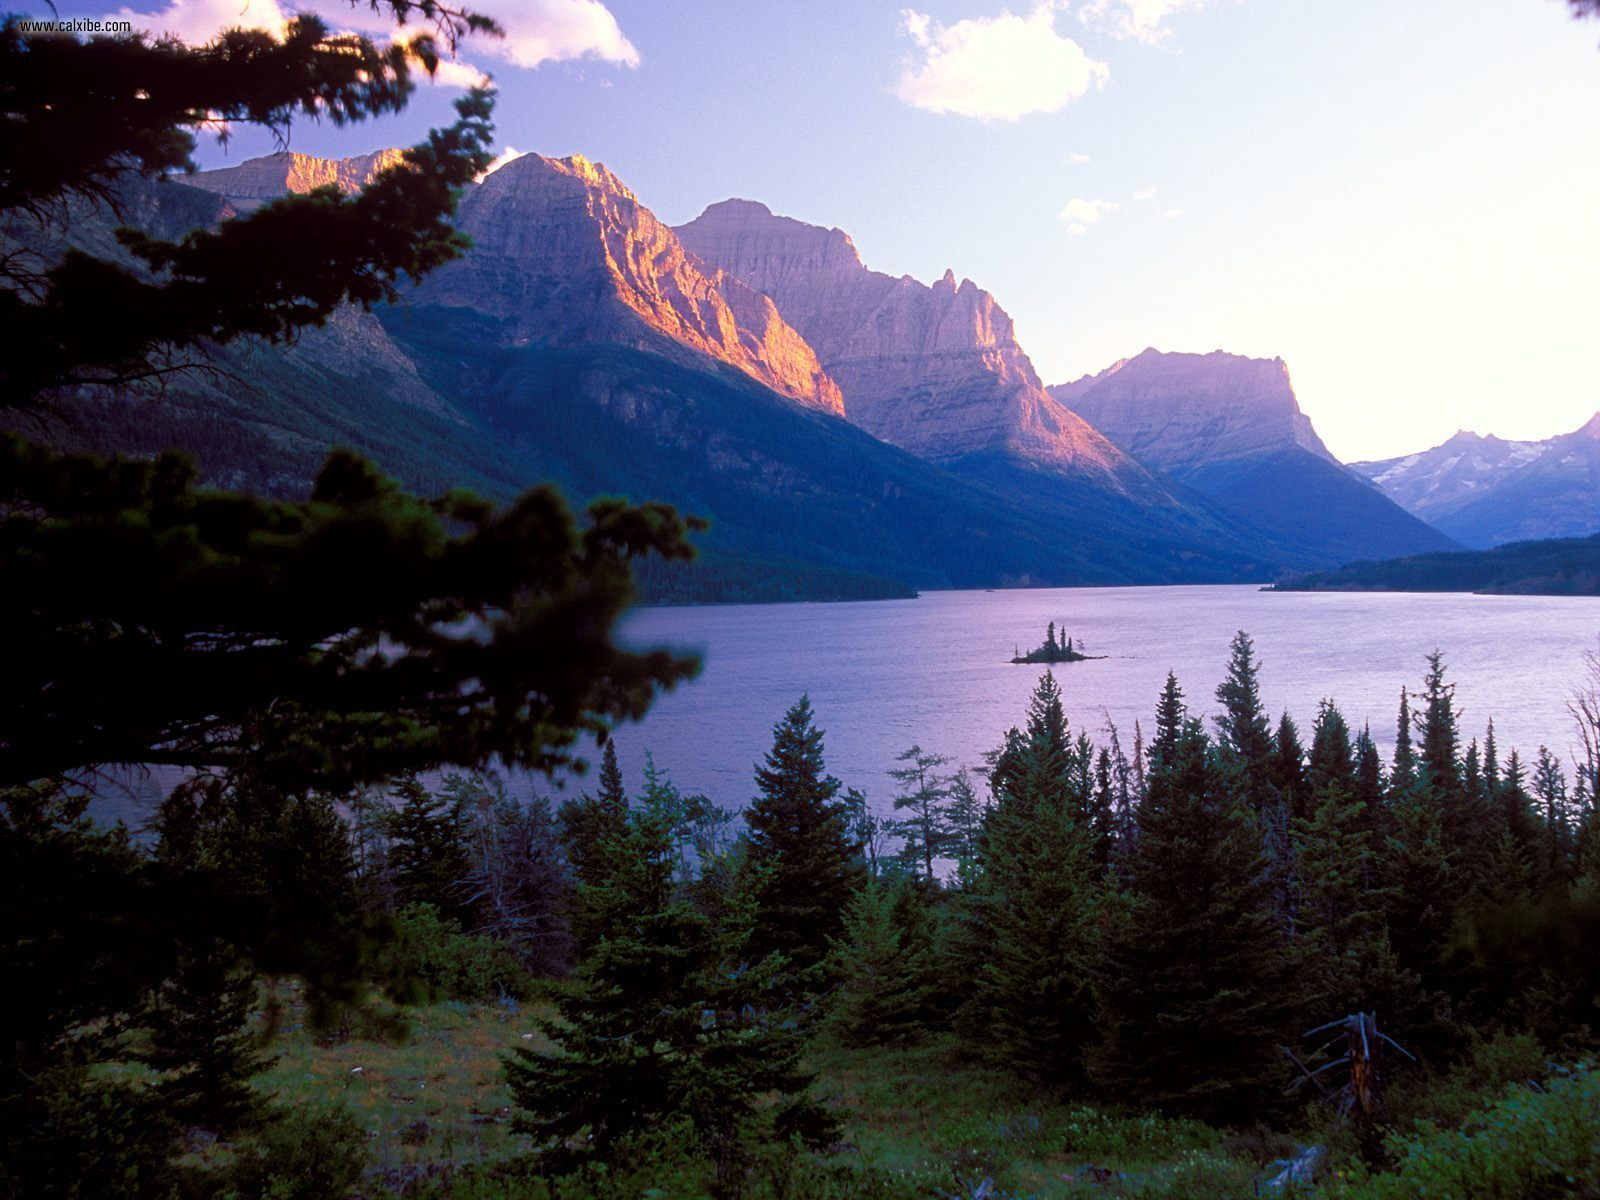 Clearest Water Montana Images Glacier National Park Hd Wallpaper And